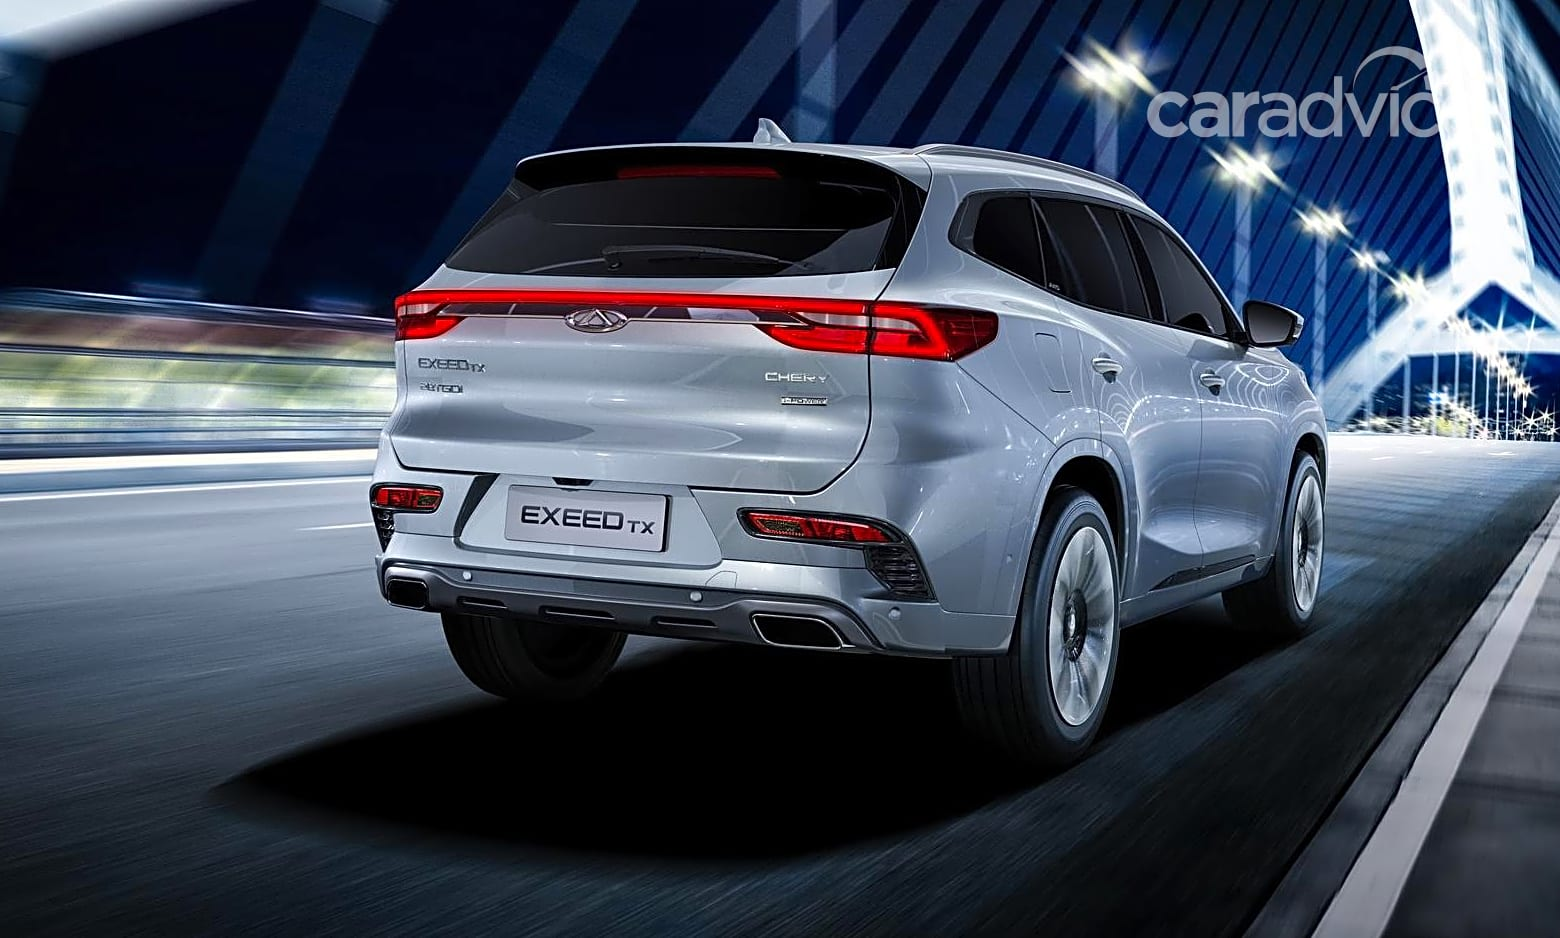 Exeed TX: China's Chery launches new brand and SUV for ...